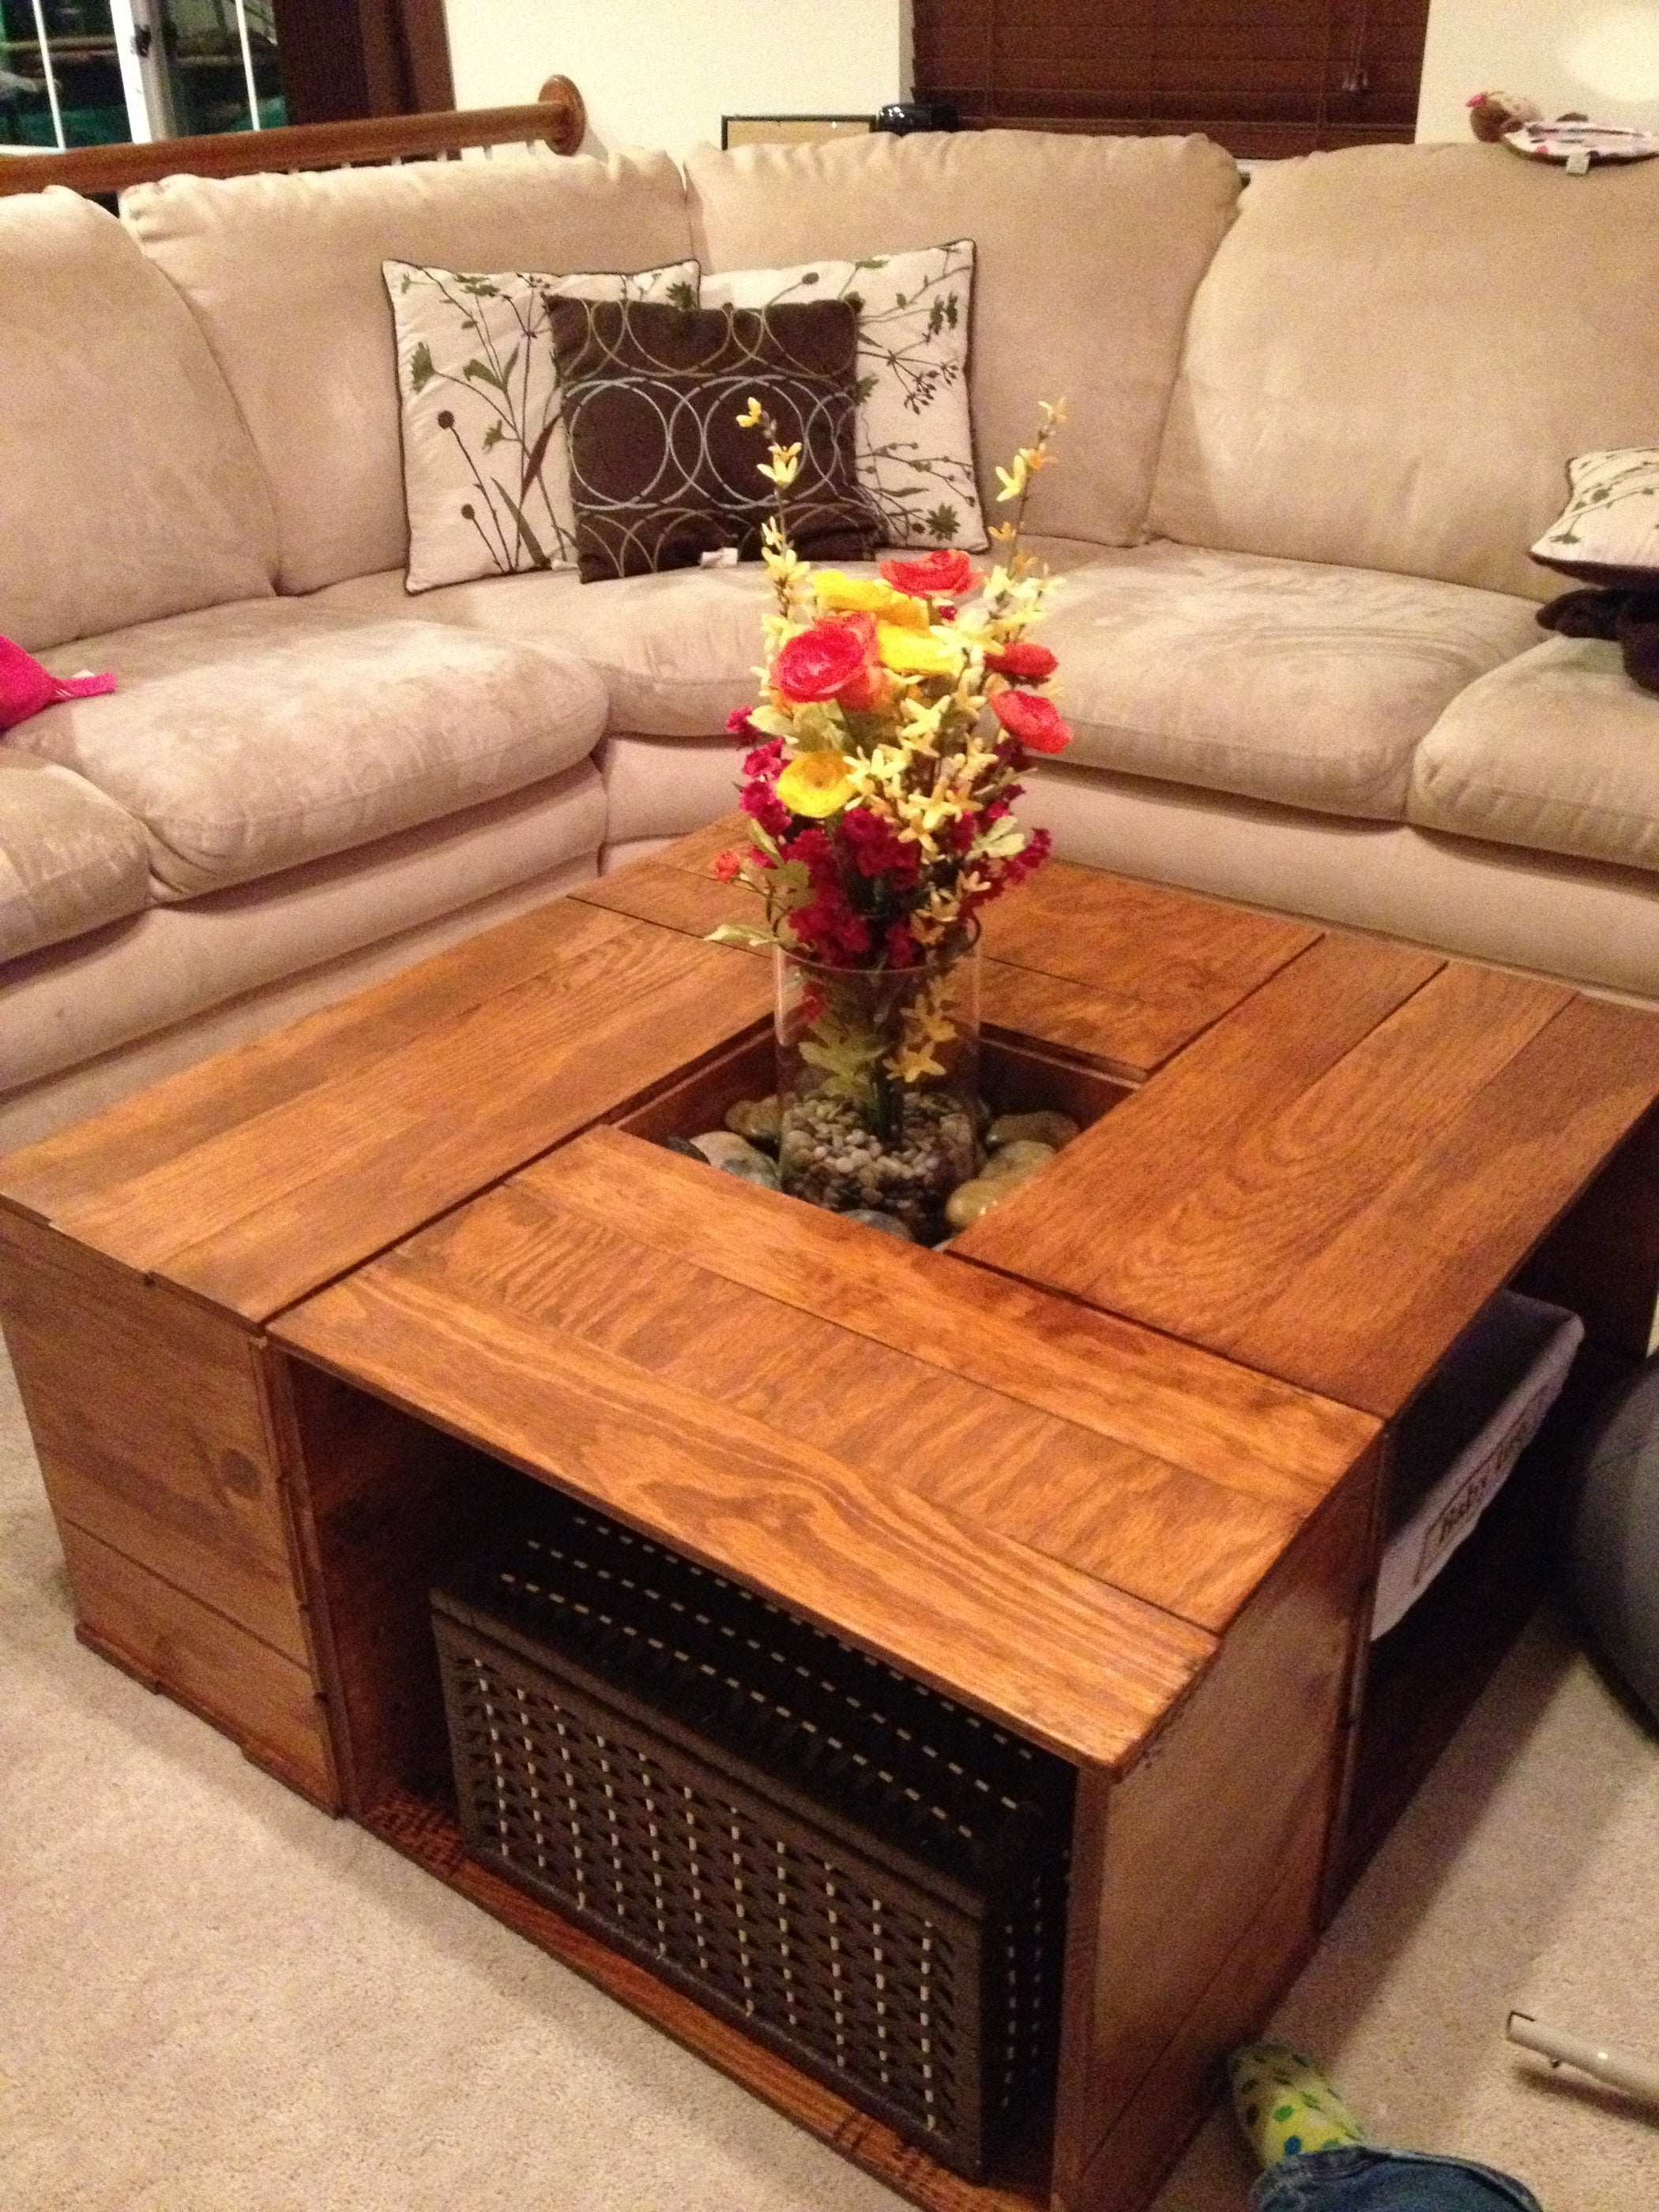 20 DIY Wooden Crate Coffee Tables | Guide Patterns |Wooden Crate Coffee Table